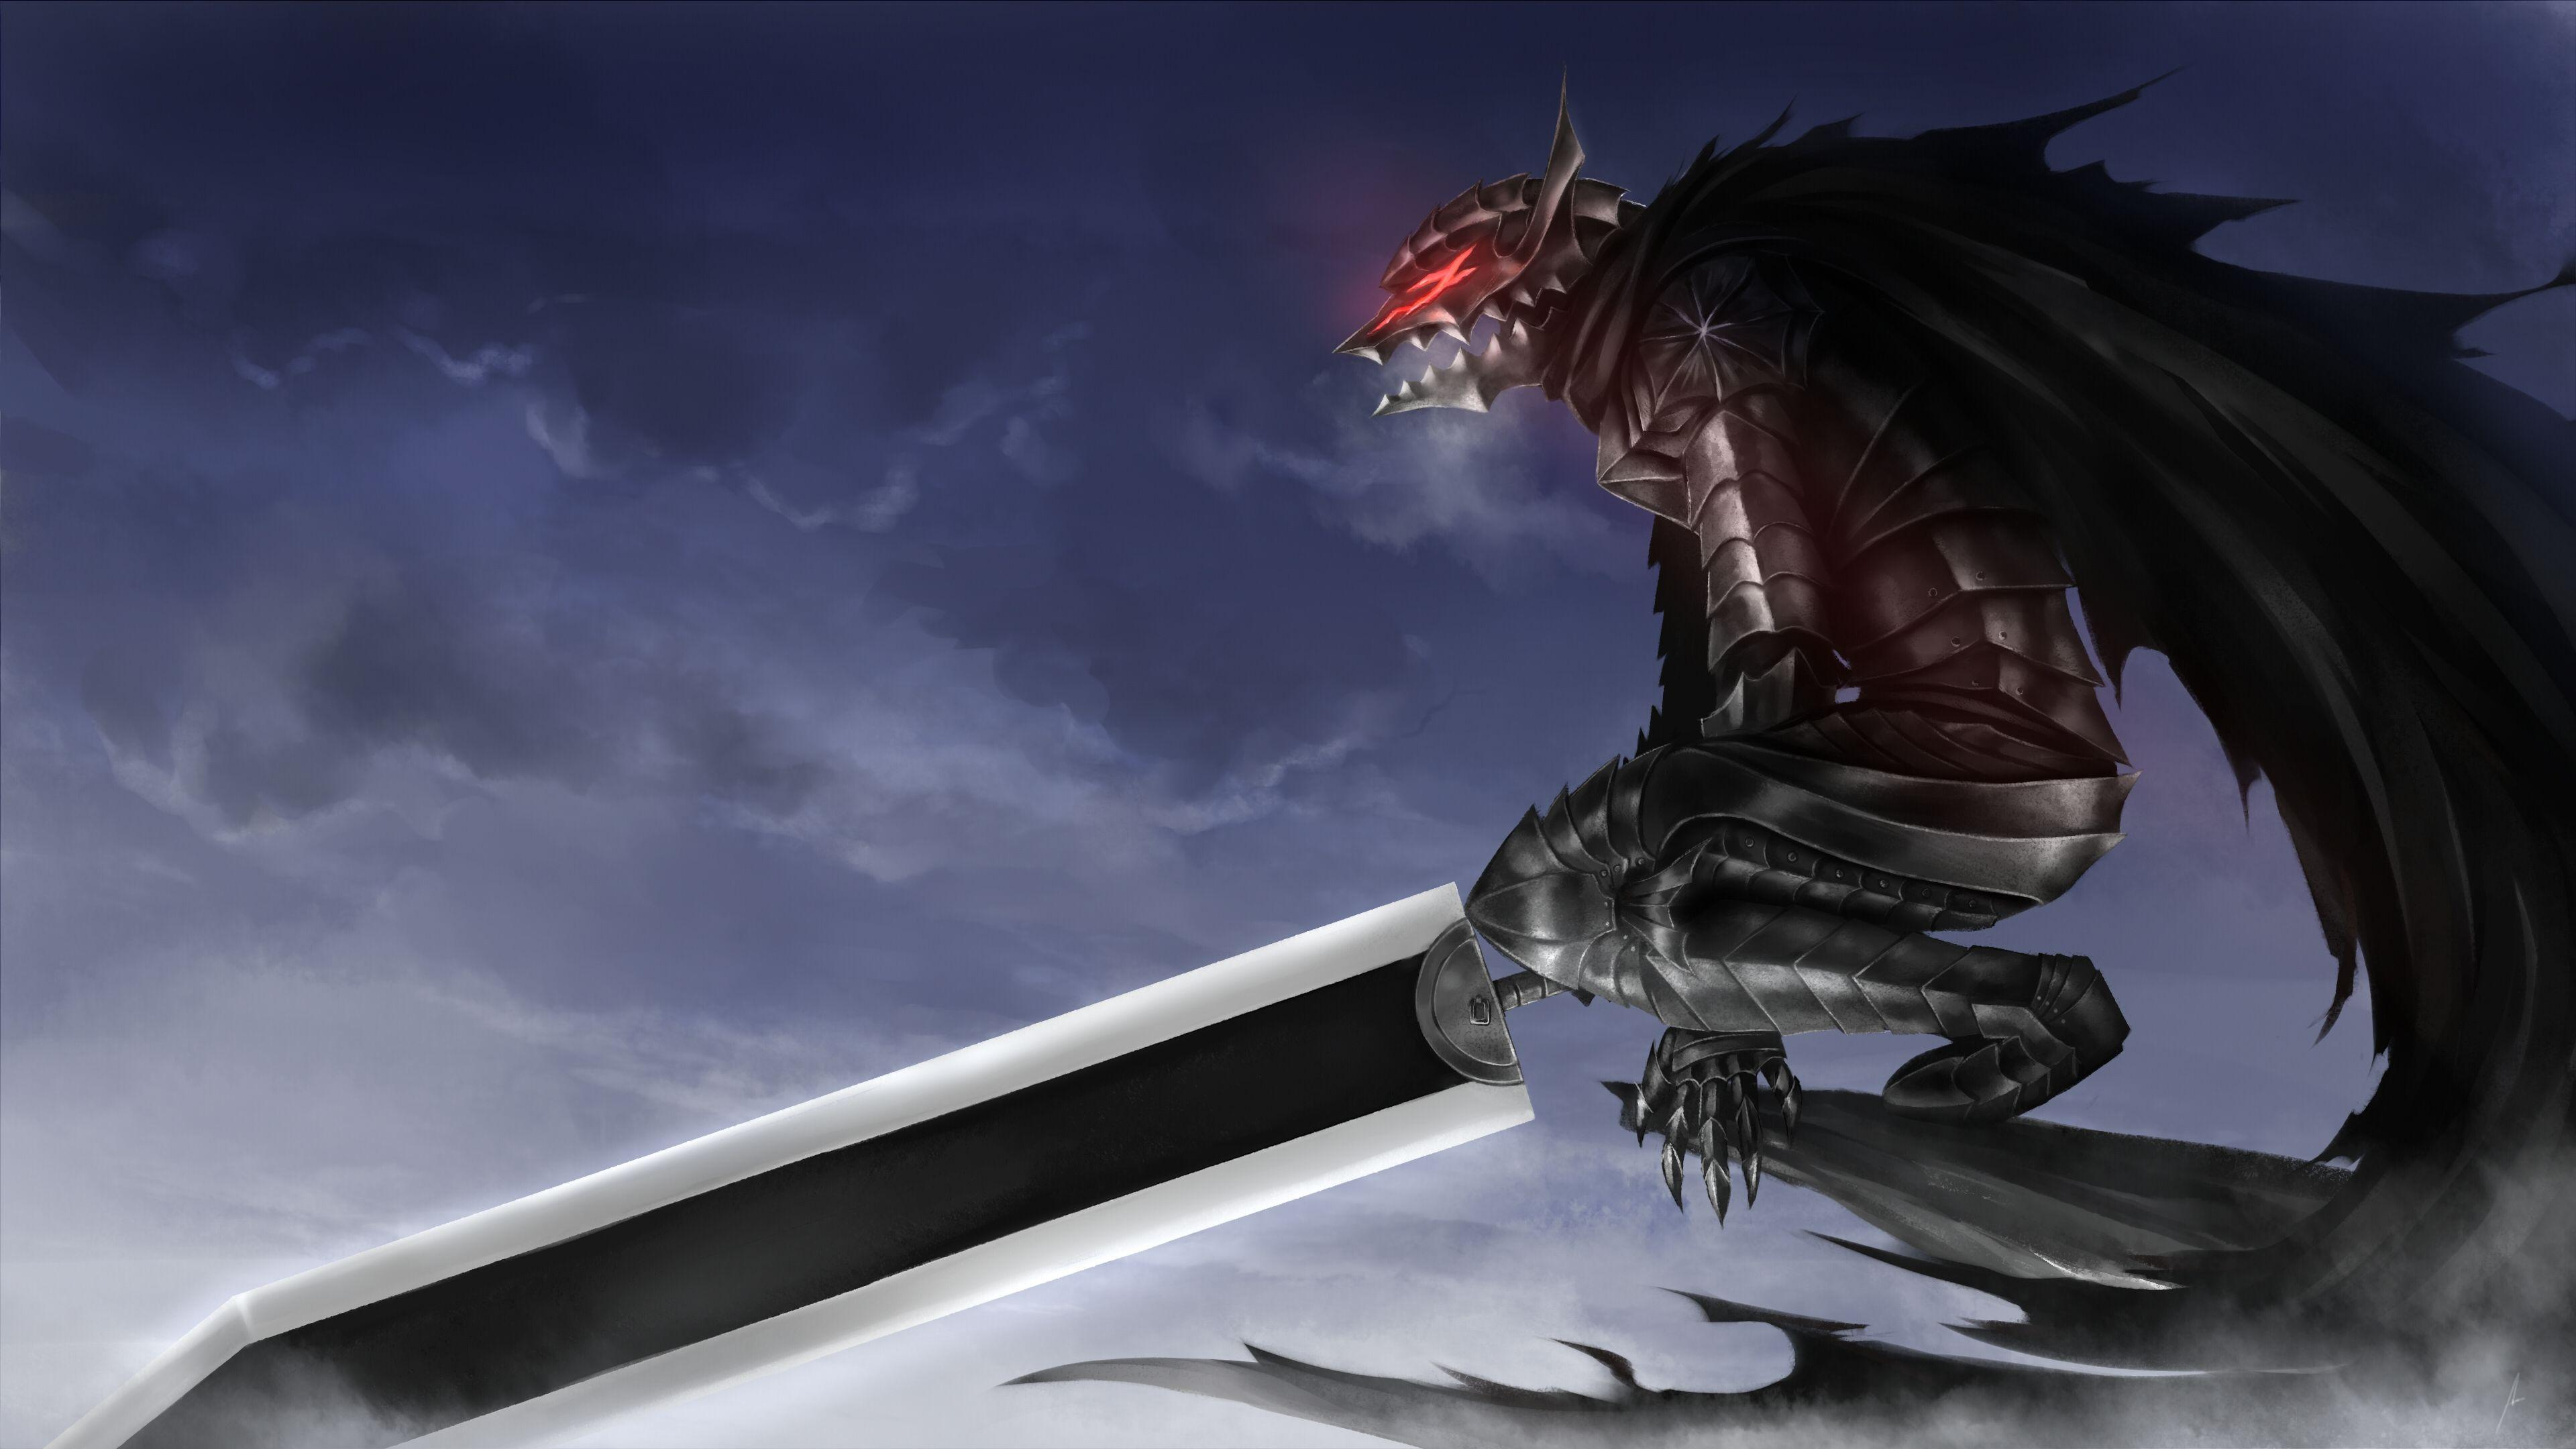 Wallpapers Berserk, Guts, Armor, Sword